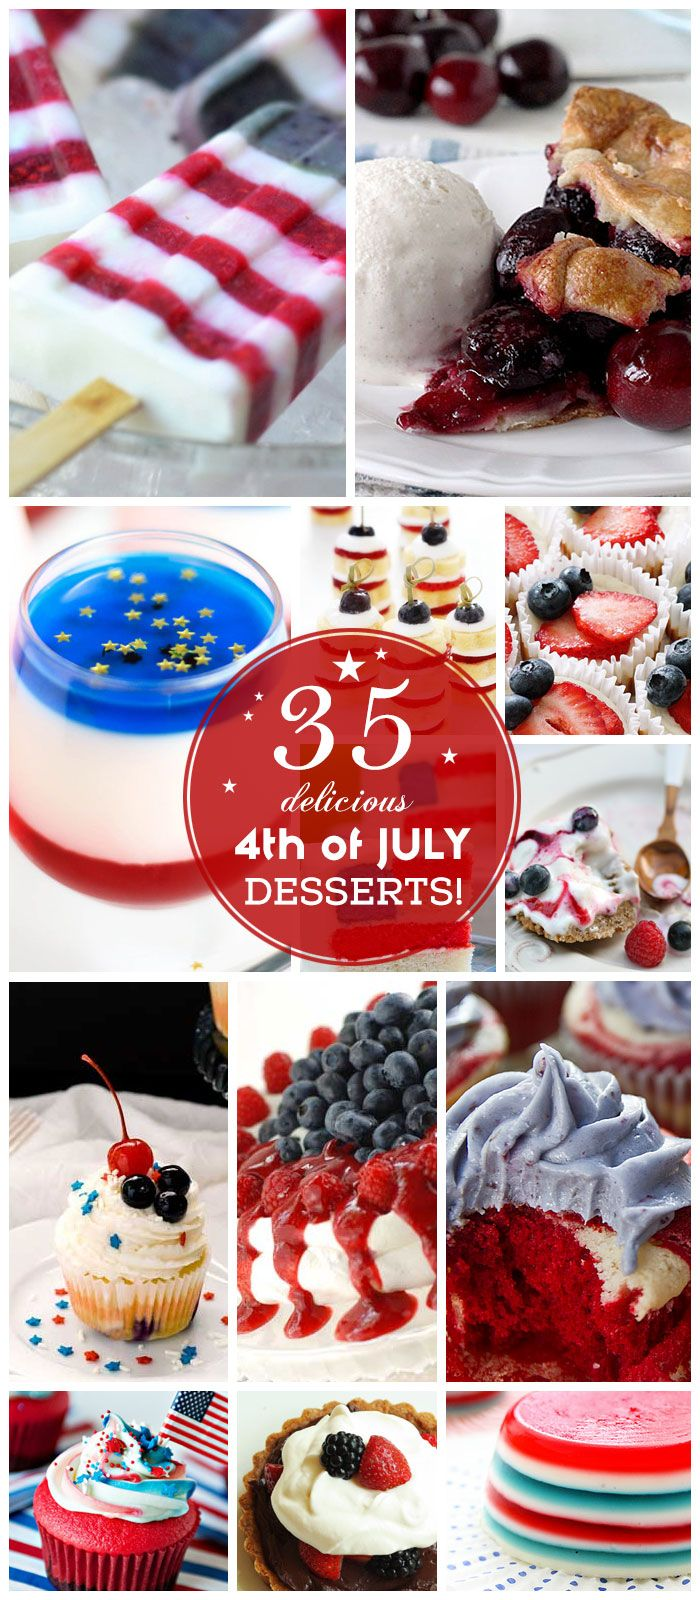 17 Best Images About Fourth Of July Ideas On Pinterest